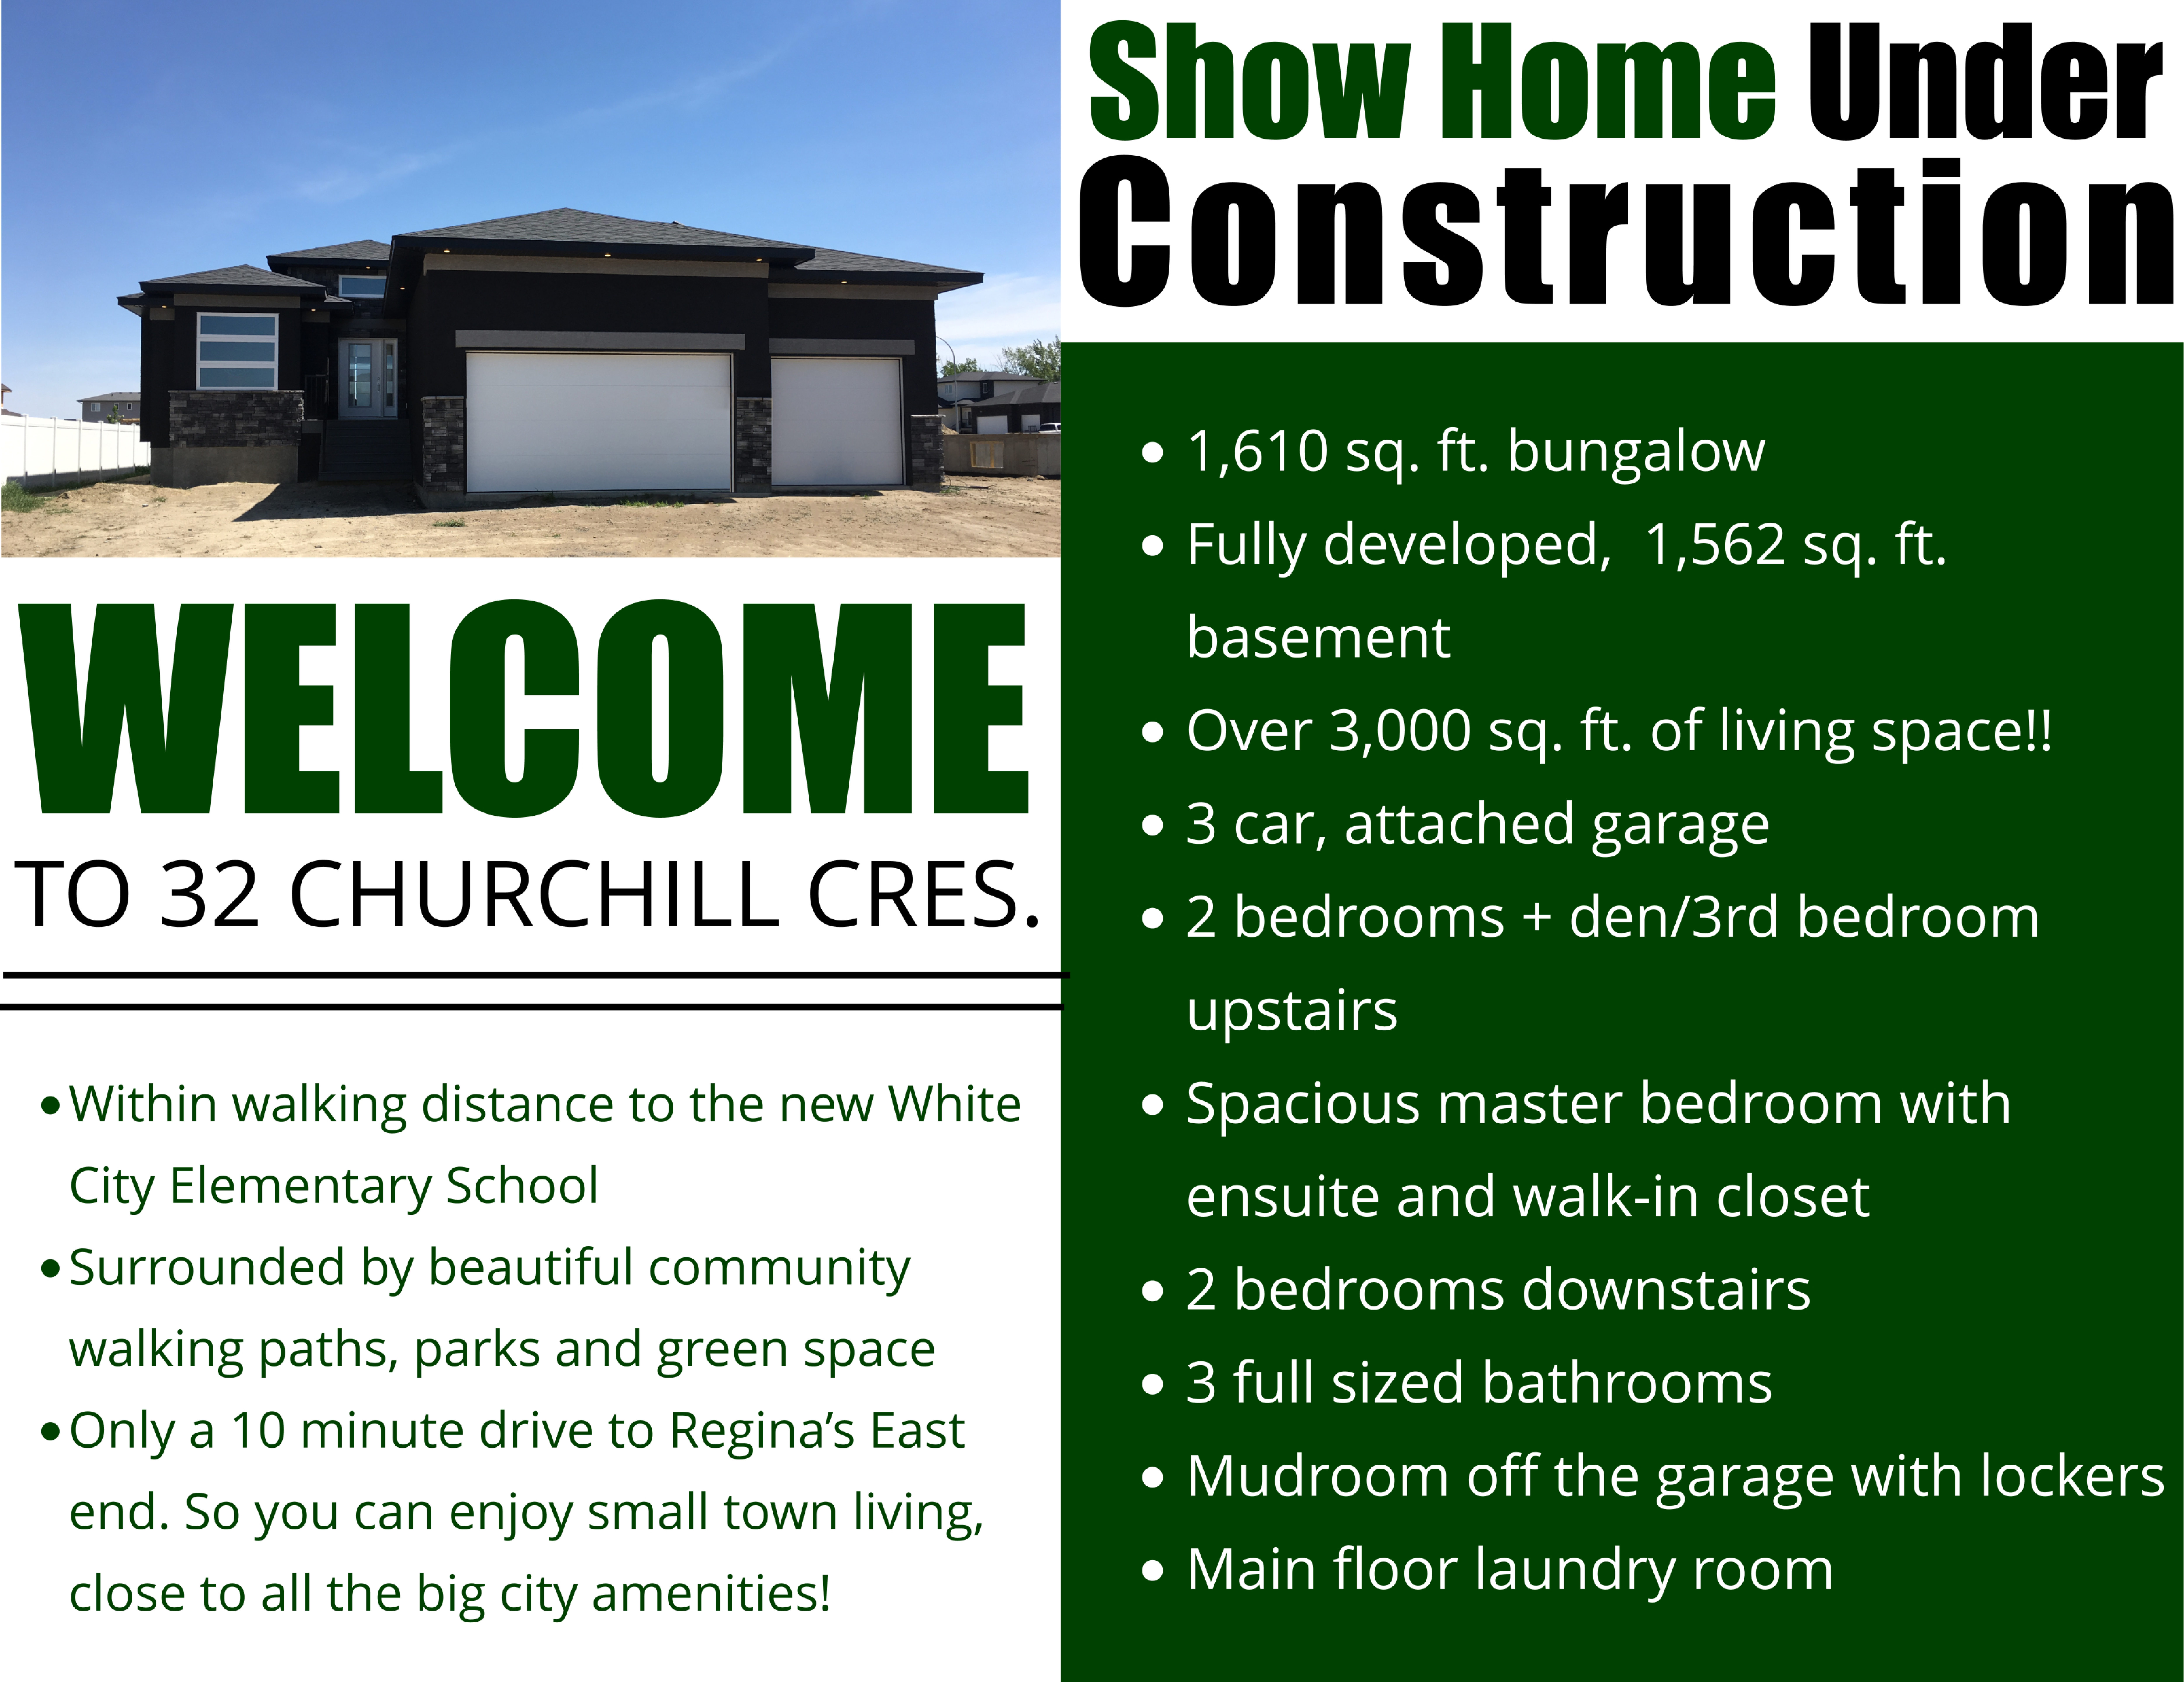 Emerald Park Homes Home Builder Show Home Under Construction in White City at 32 Churchill Crescent